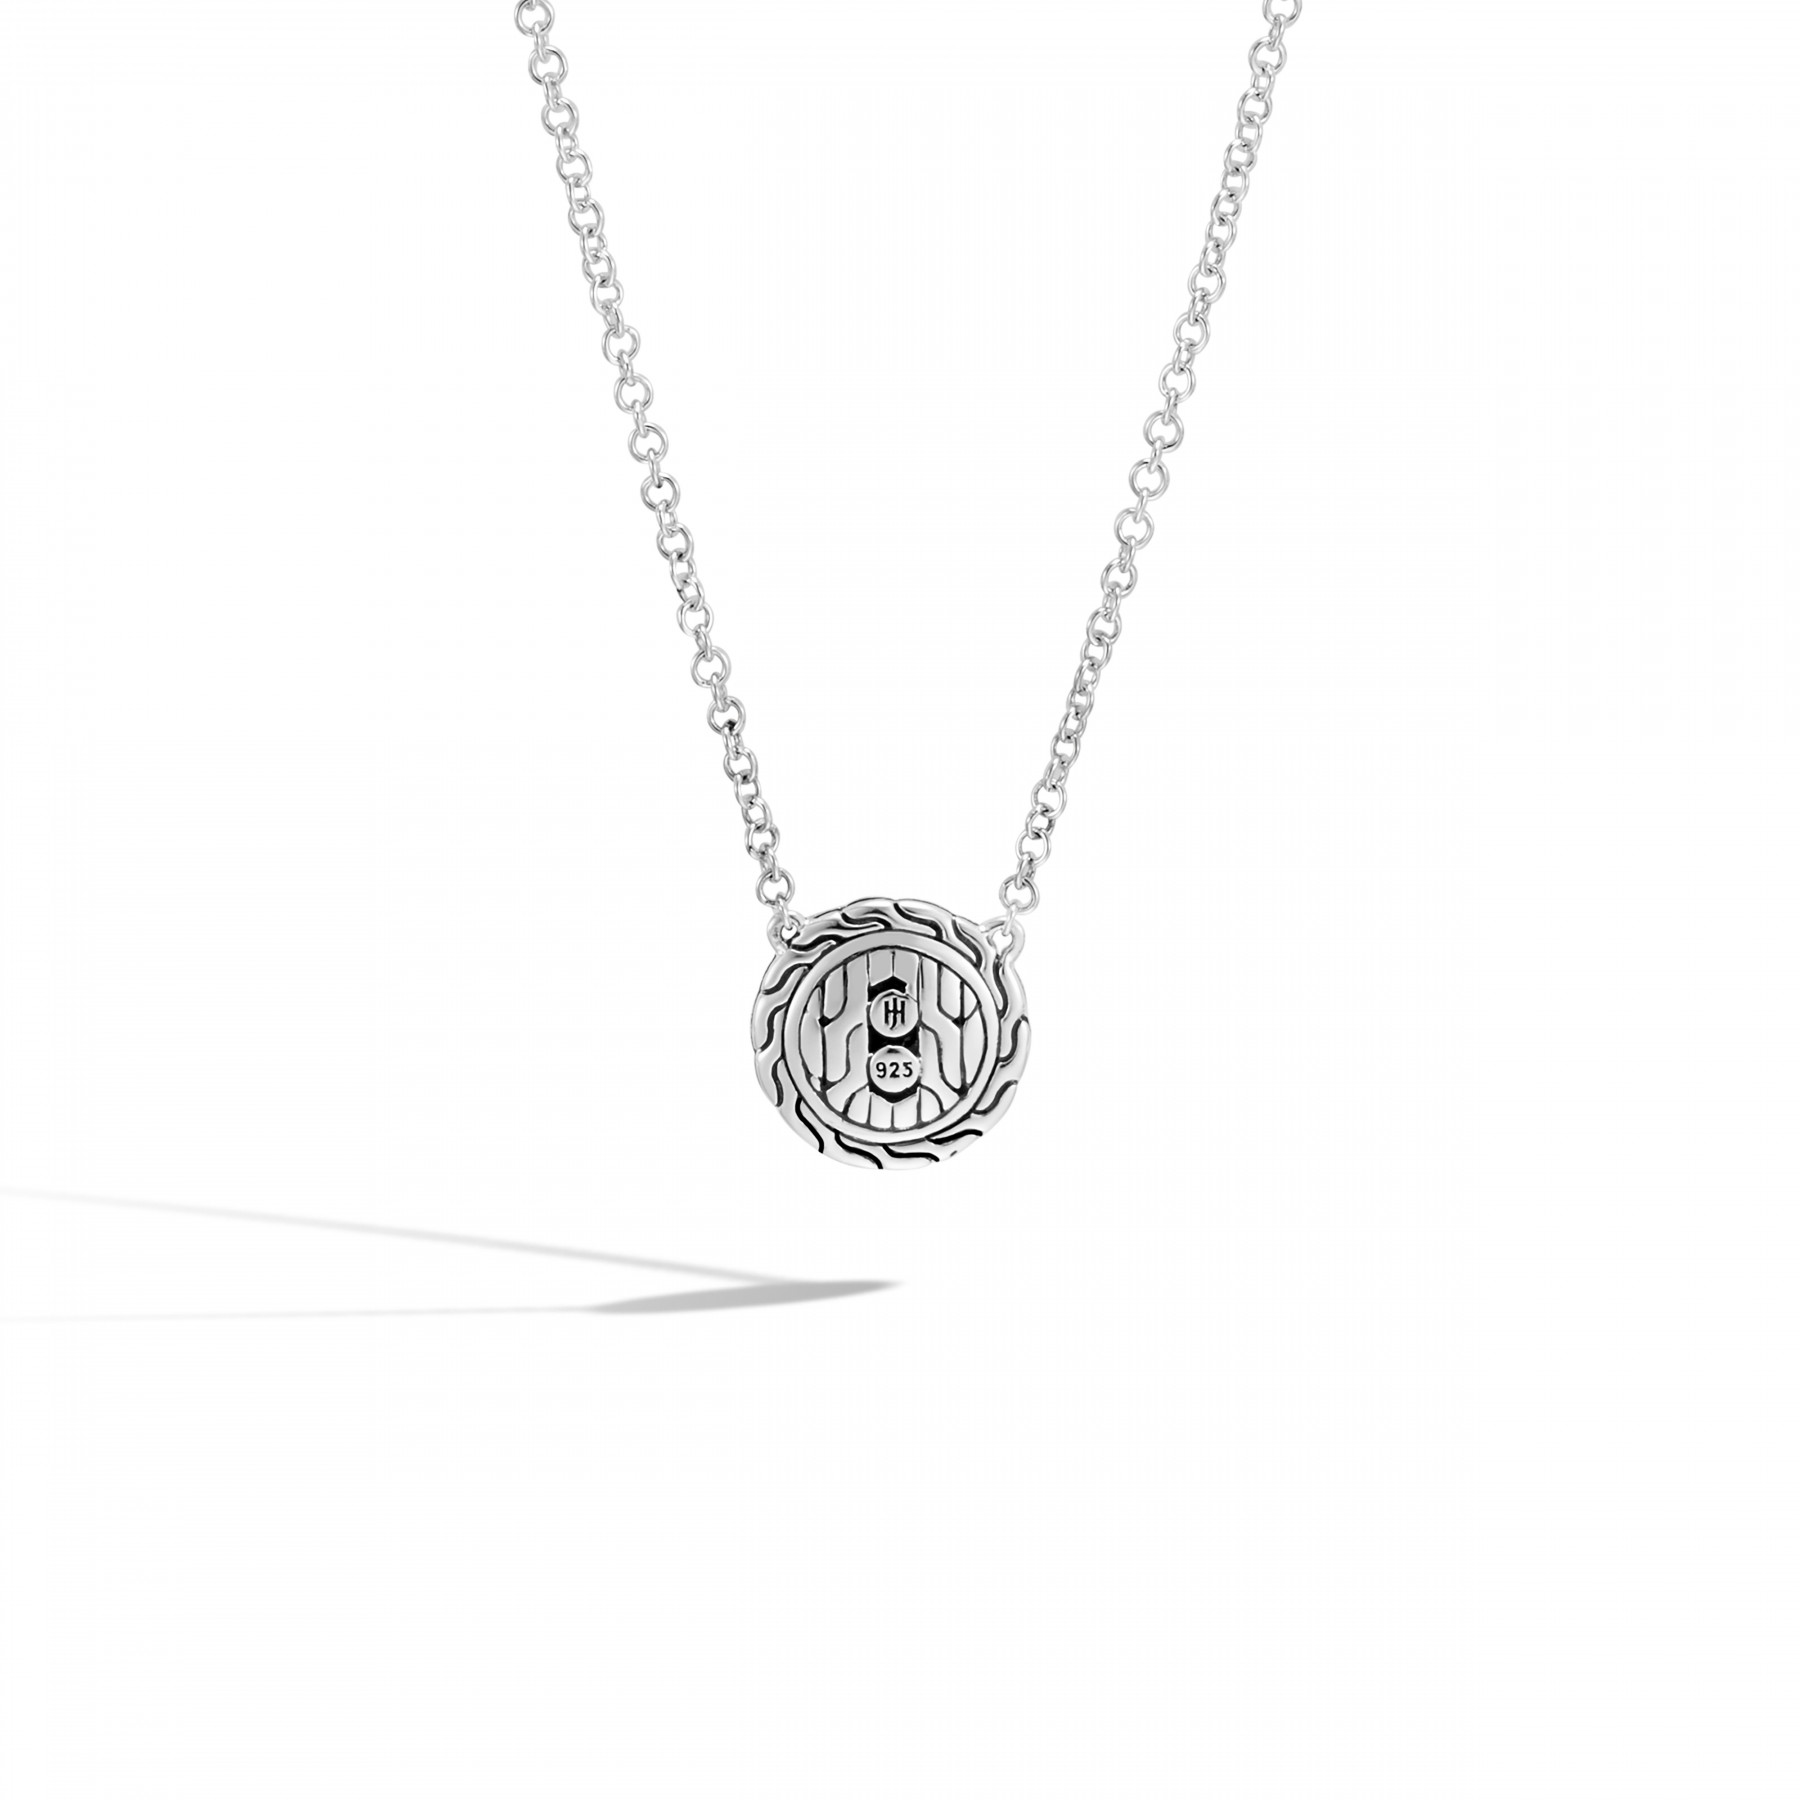 John Hardy Classic Chain Round Diamond Necklace back view